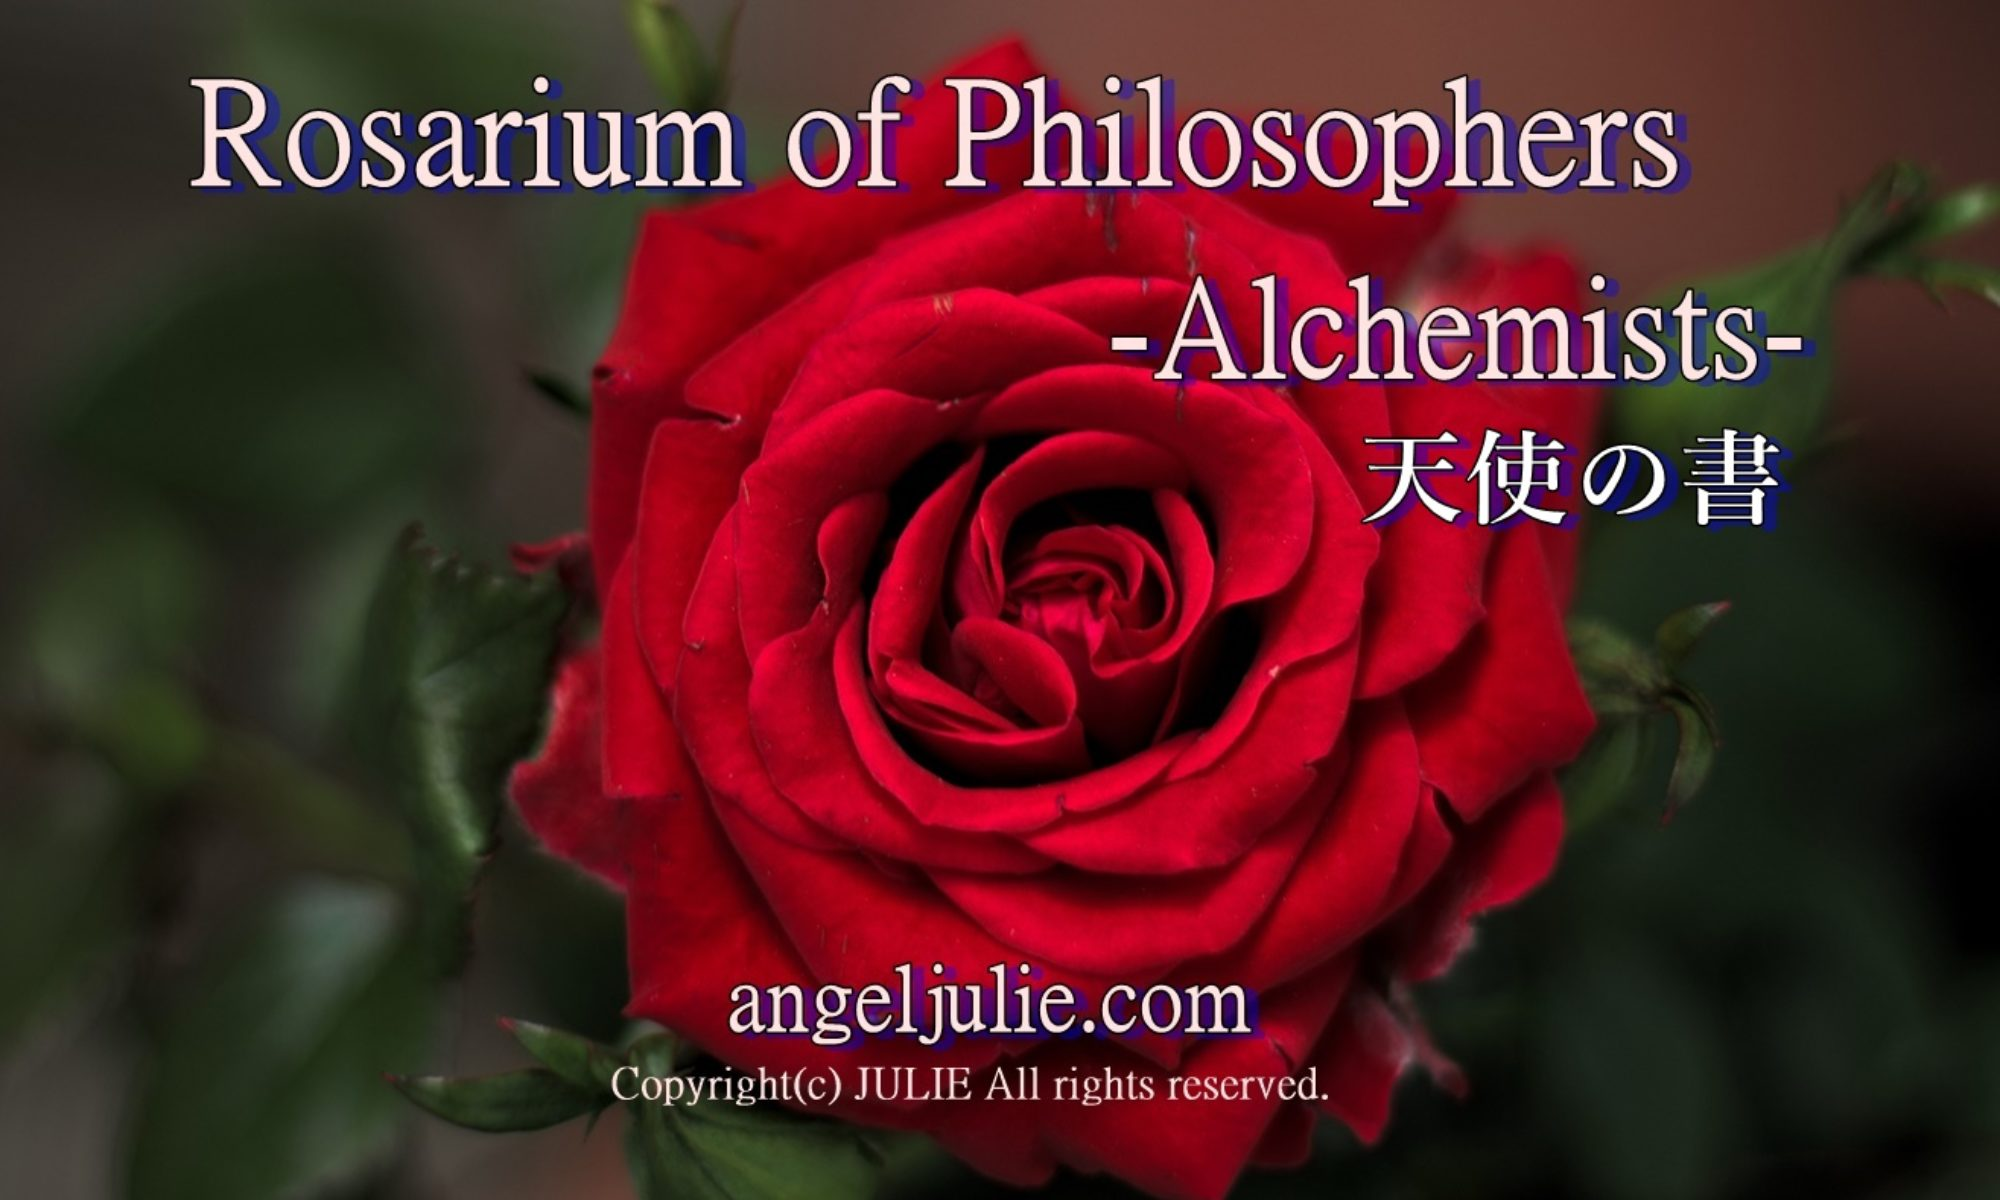 Rosarium of Philosophers Project : Rosarium of Philosophers -Alchemists - Follow my heart by Angel Julie | The Book of Angels